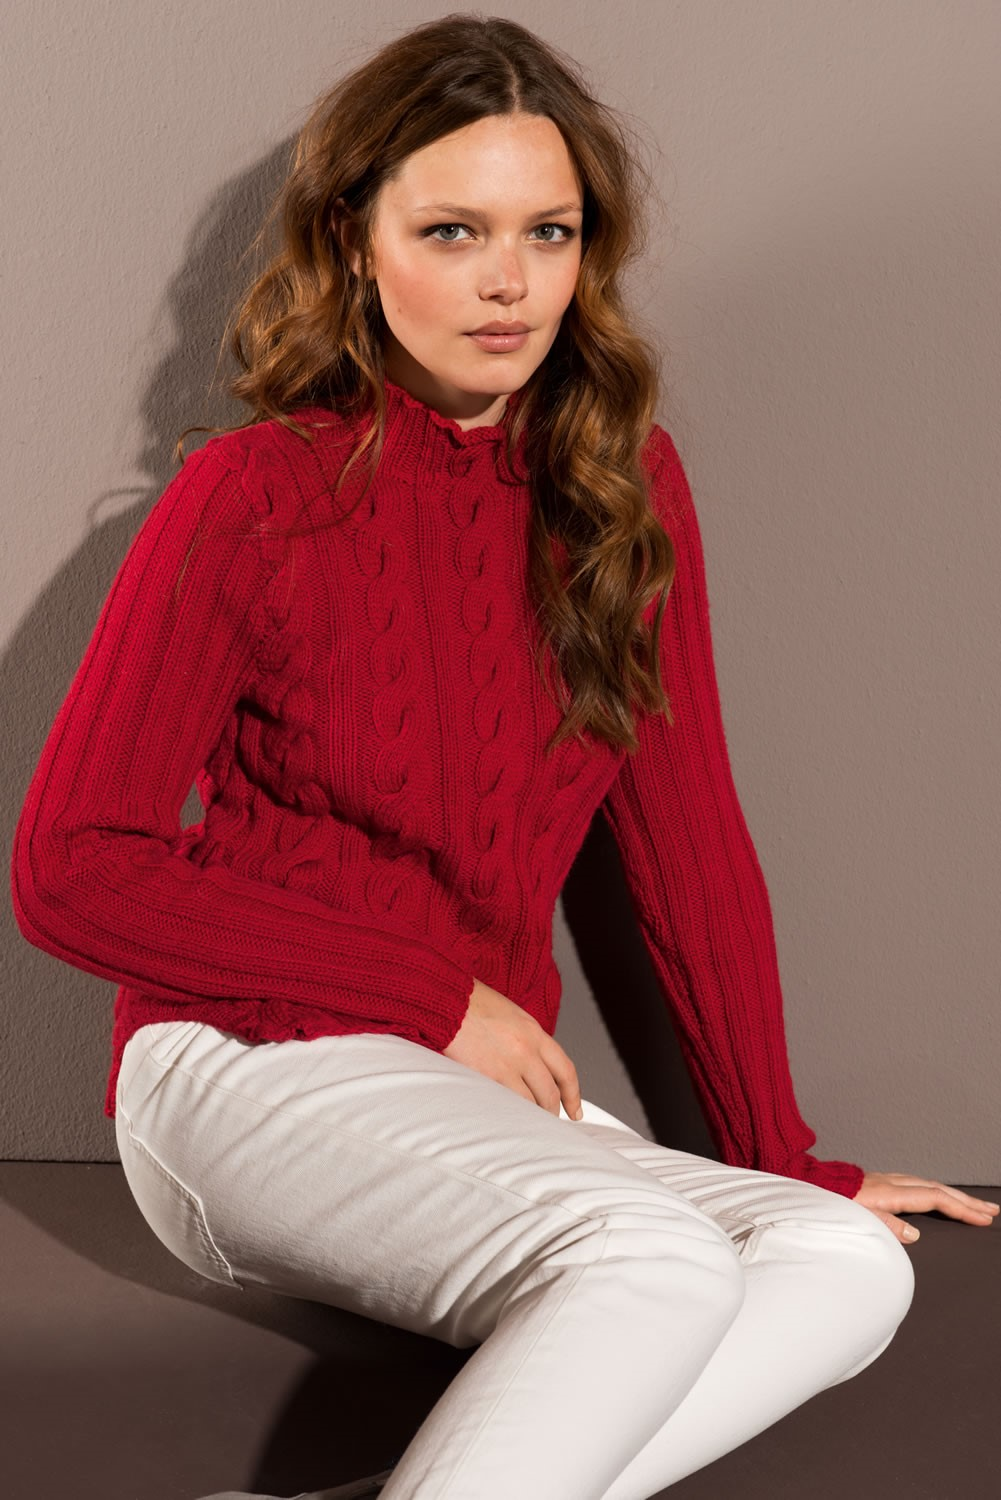 Lana Grossa PULLOVER IN RIB AND CABLE PATTERN in Cool Wool Alpaca